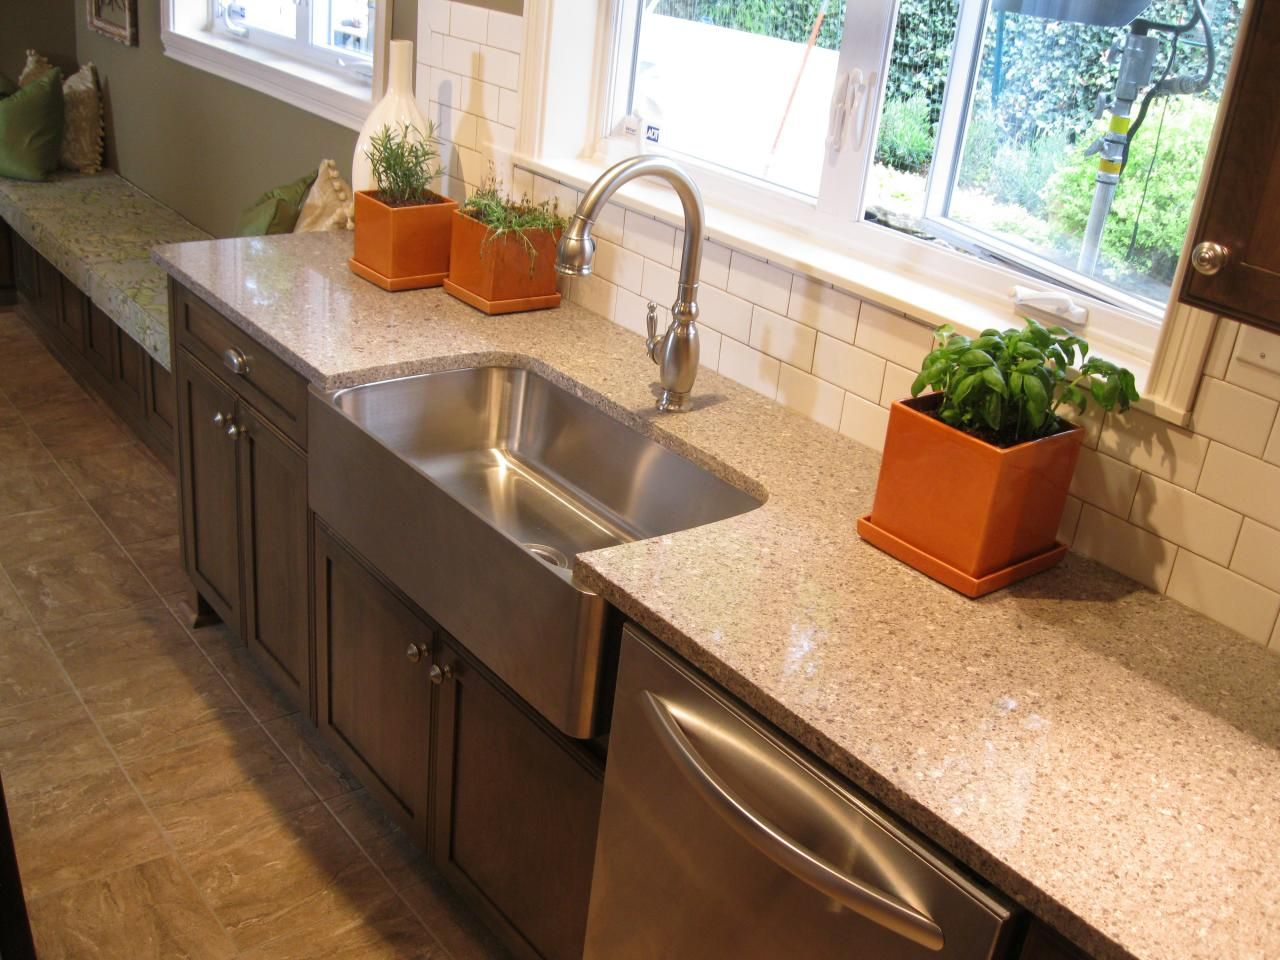 A stainless steel farmhouse sink complements the stainless dishwasher and provides contrast to the dark-stained wood cabinets in this kitchen's sink area. A window above the sink provides lots of natural light for the various potted herbs on the neutral stone countertops.